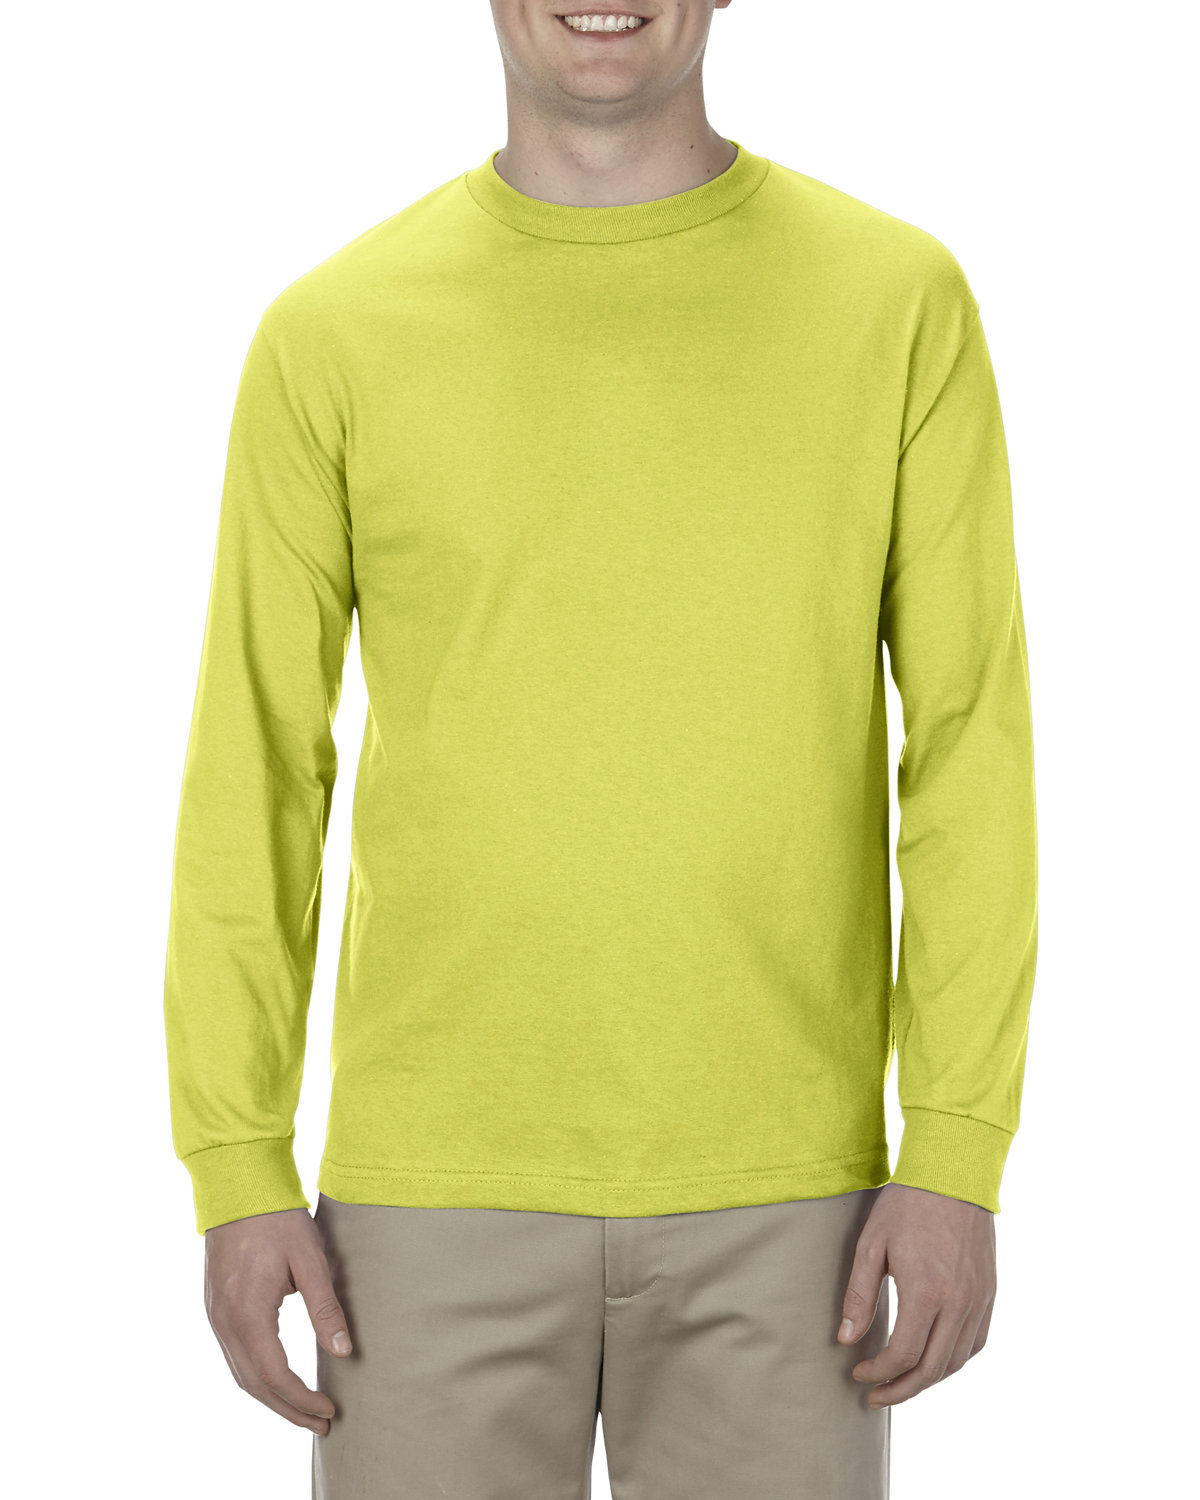 Alstyle Adult 6.0 oz., 100% Cotton Long-Sleeve T-Shirt SAFETY GREEN